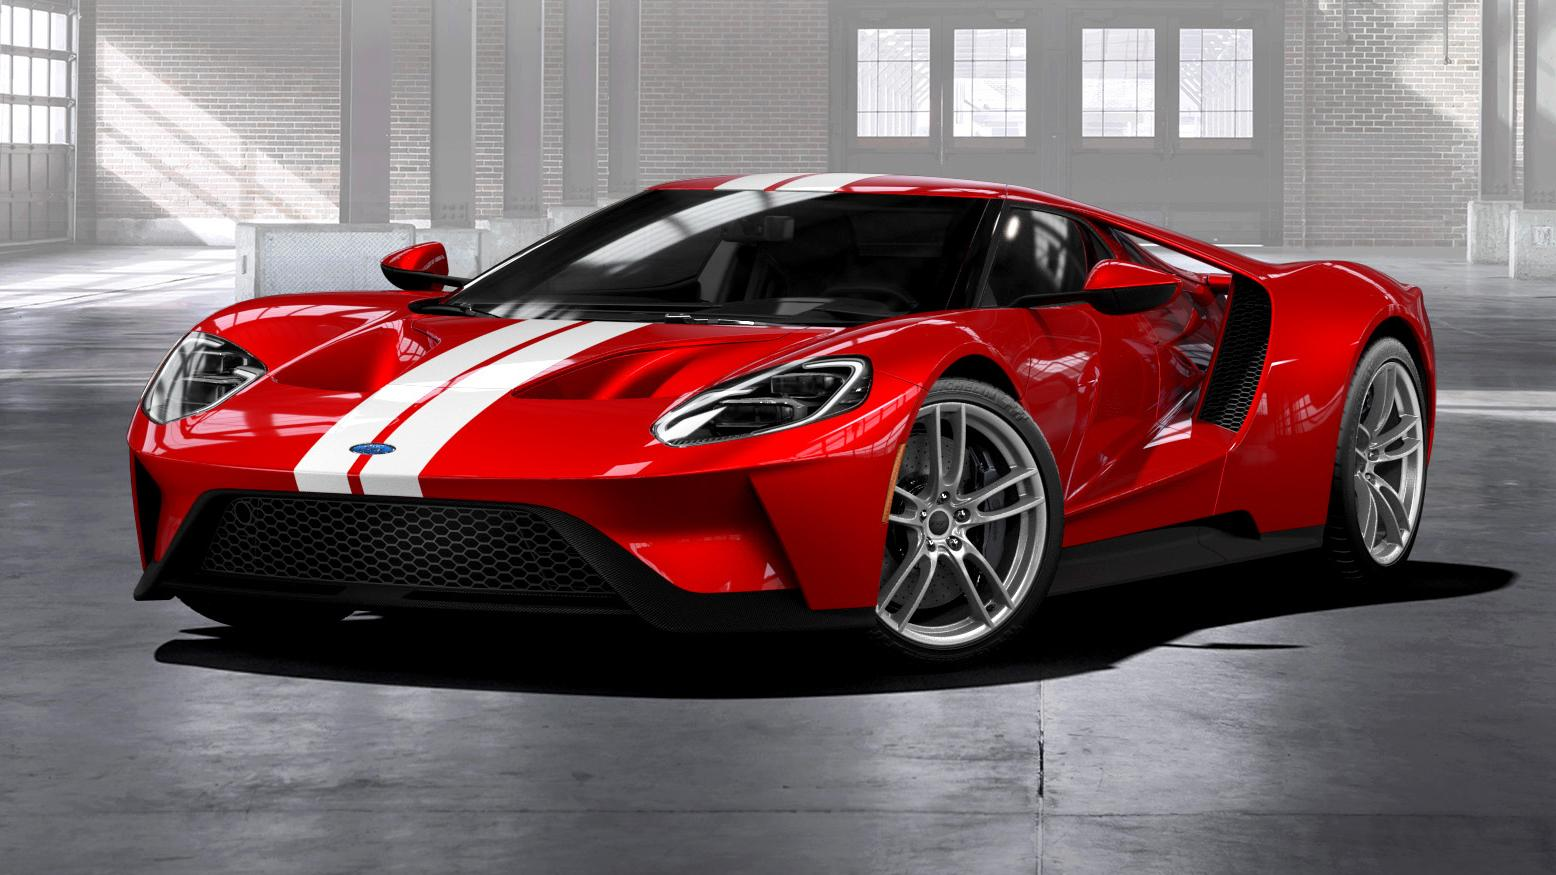 Productie Ford GT verlengd